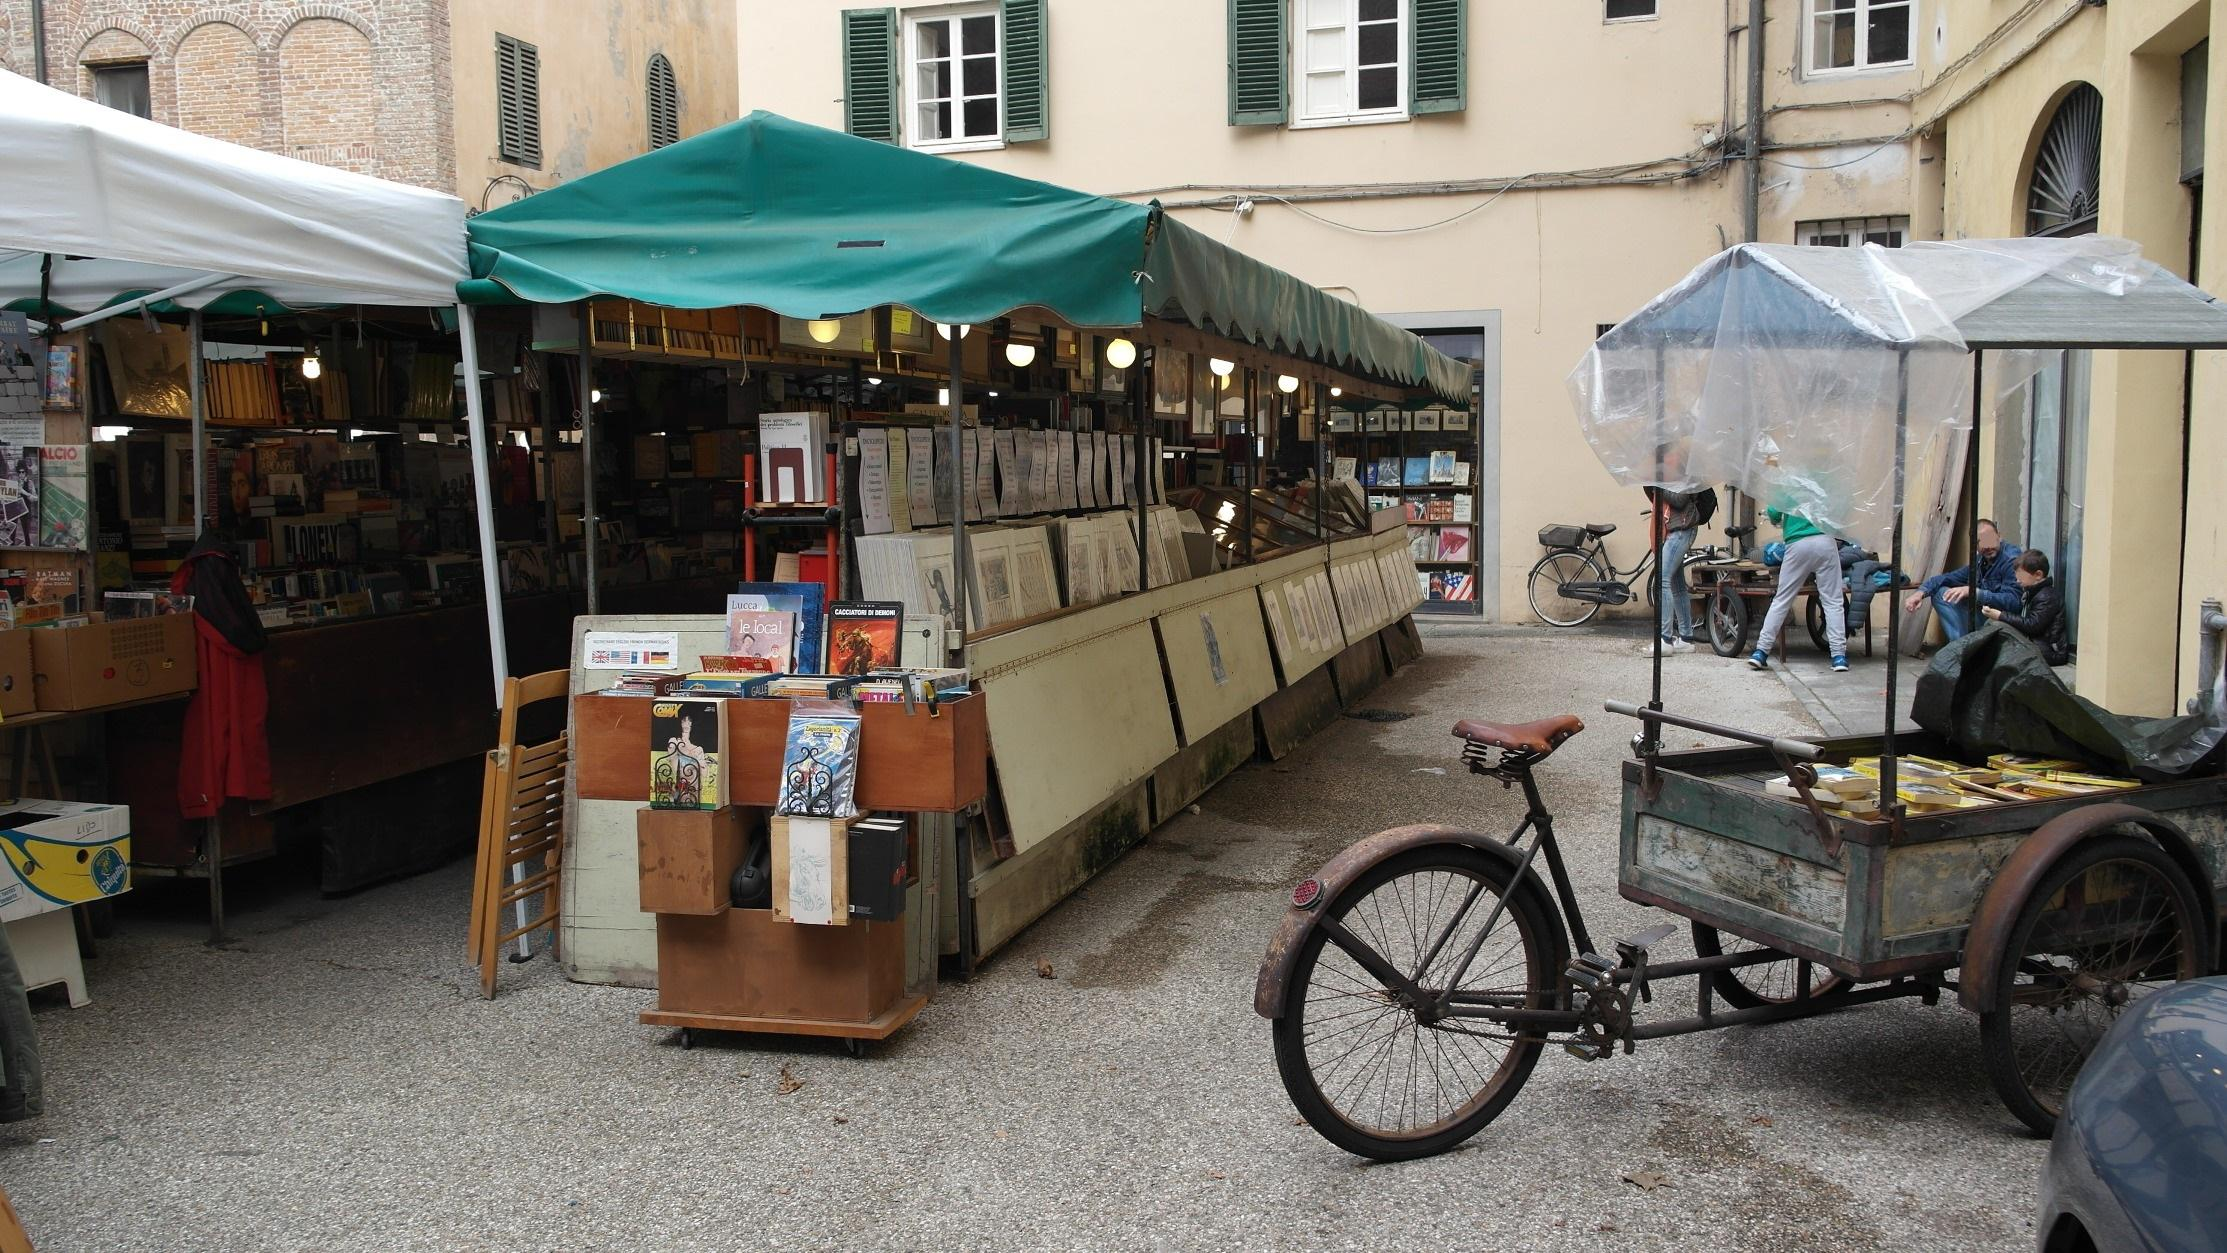 Book and Comic's Market